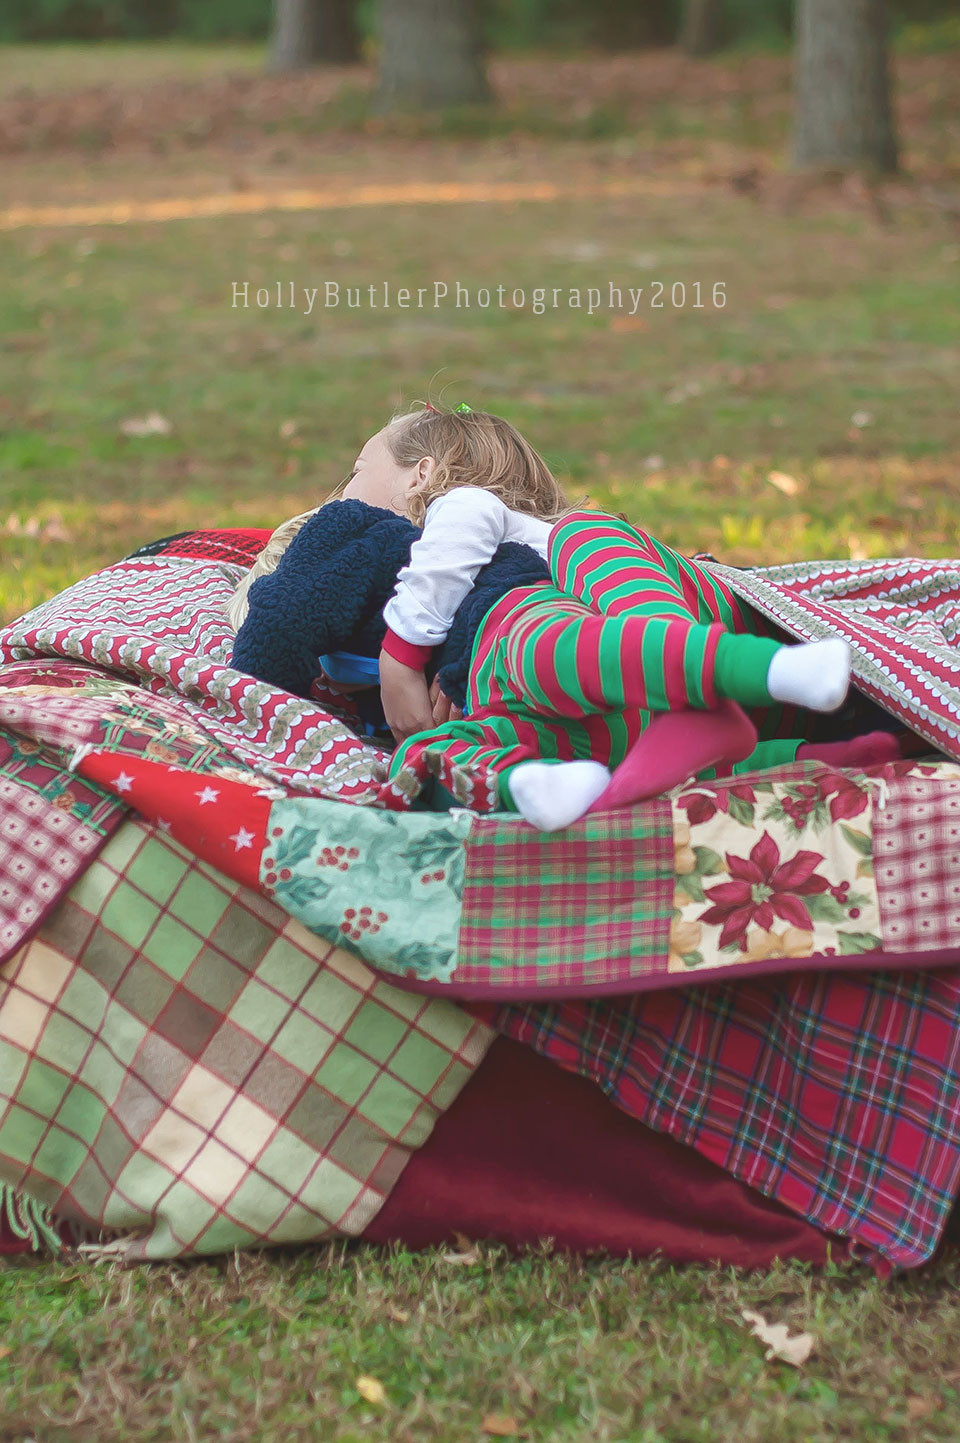 Holly Butler Photography | Seasonal Sessions | There Were 10 in the Bed